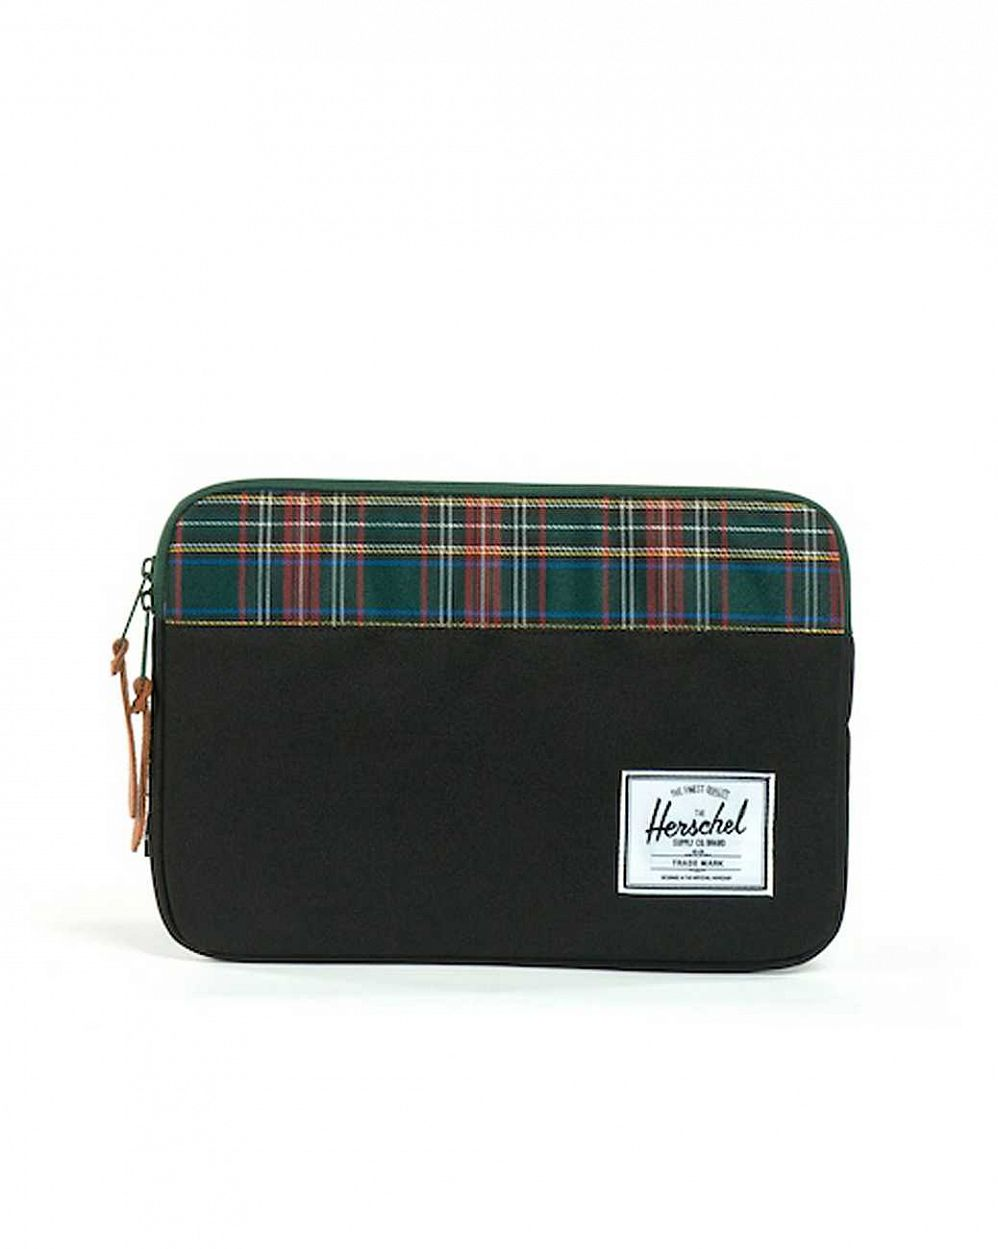 Чехол Herschel Anchor 11 AirBook Sleeve Black Tartan отзывы